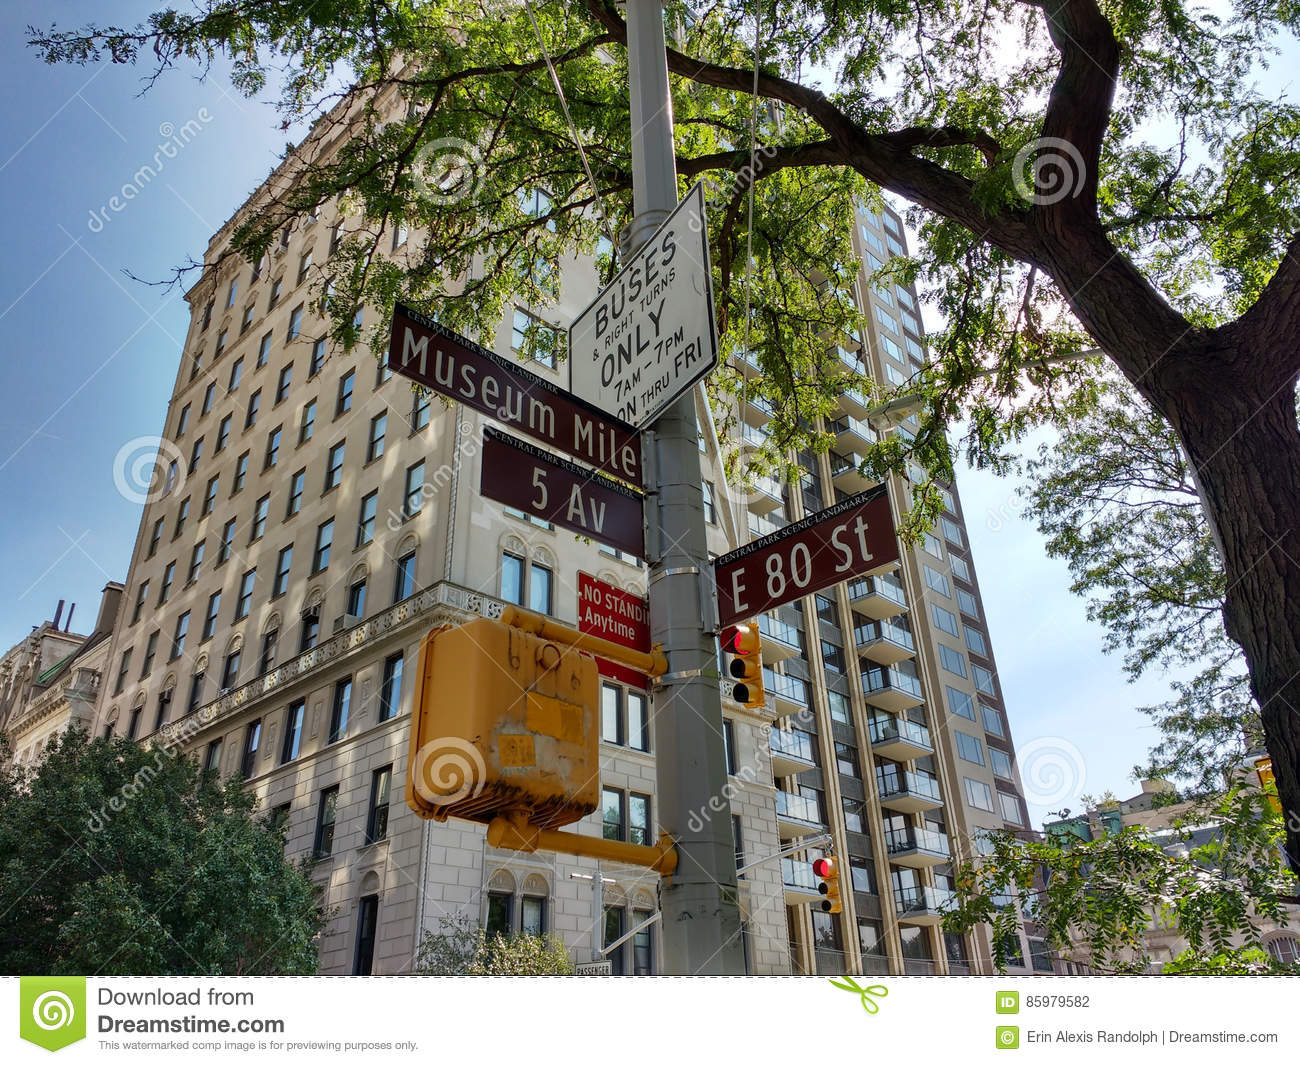 Museum Mile, 5th Avenue at East 80th Street, Street Signs, Central Park Scenic Landmark, Upper East Side, Manhattan, NYC, NY, USA